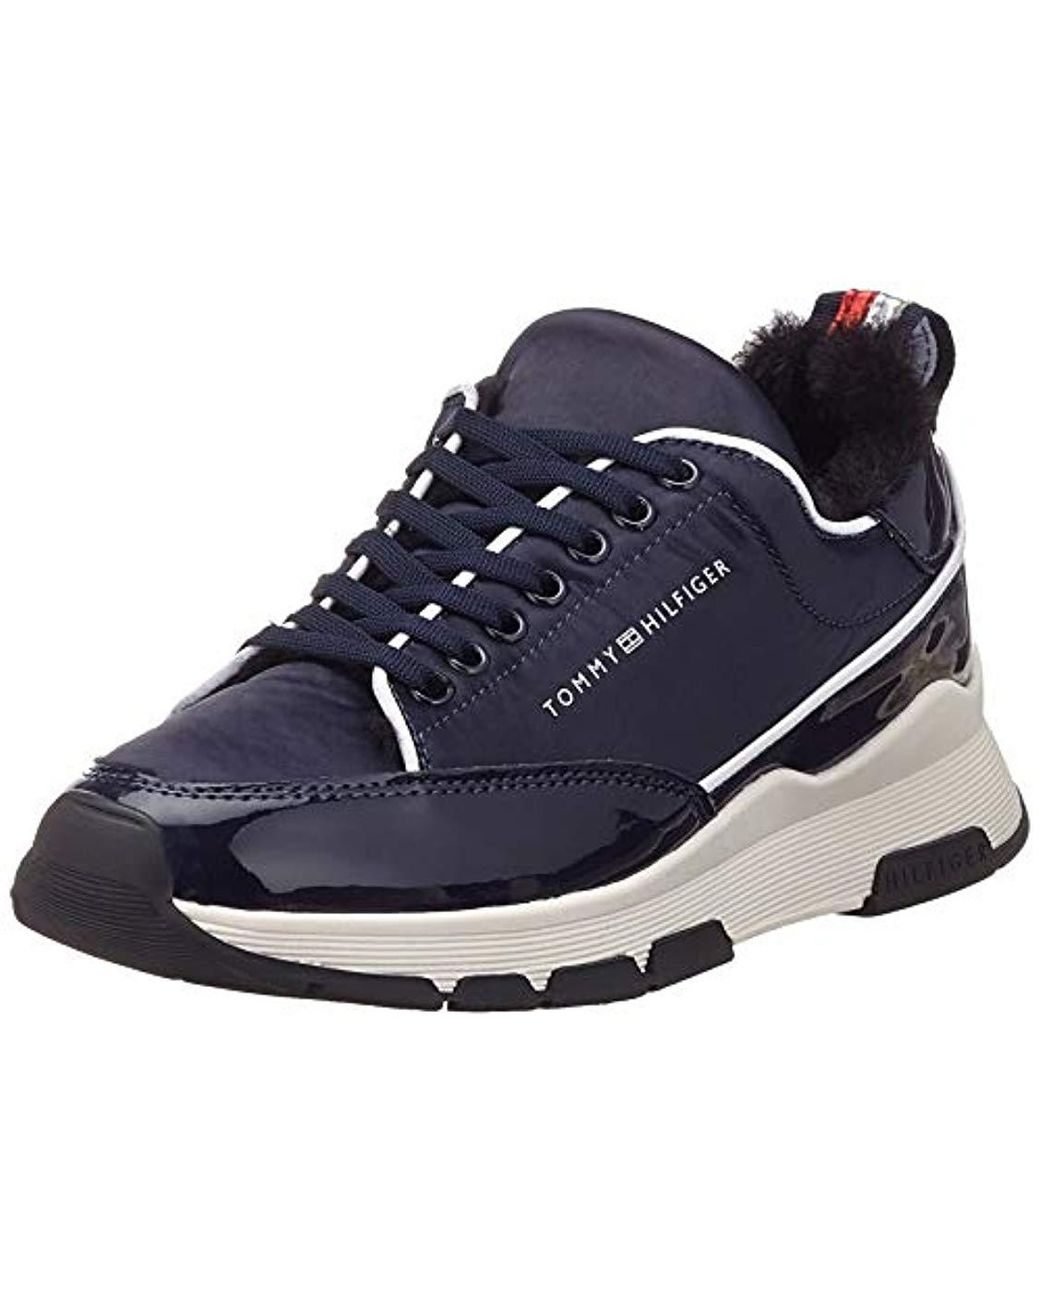 b57928db8 Tommy Hilfiger  s Cool Technical Satin Sneaker Low-top in Blue - Lyst